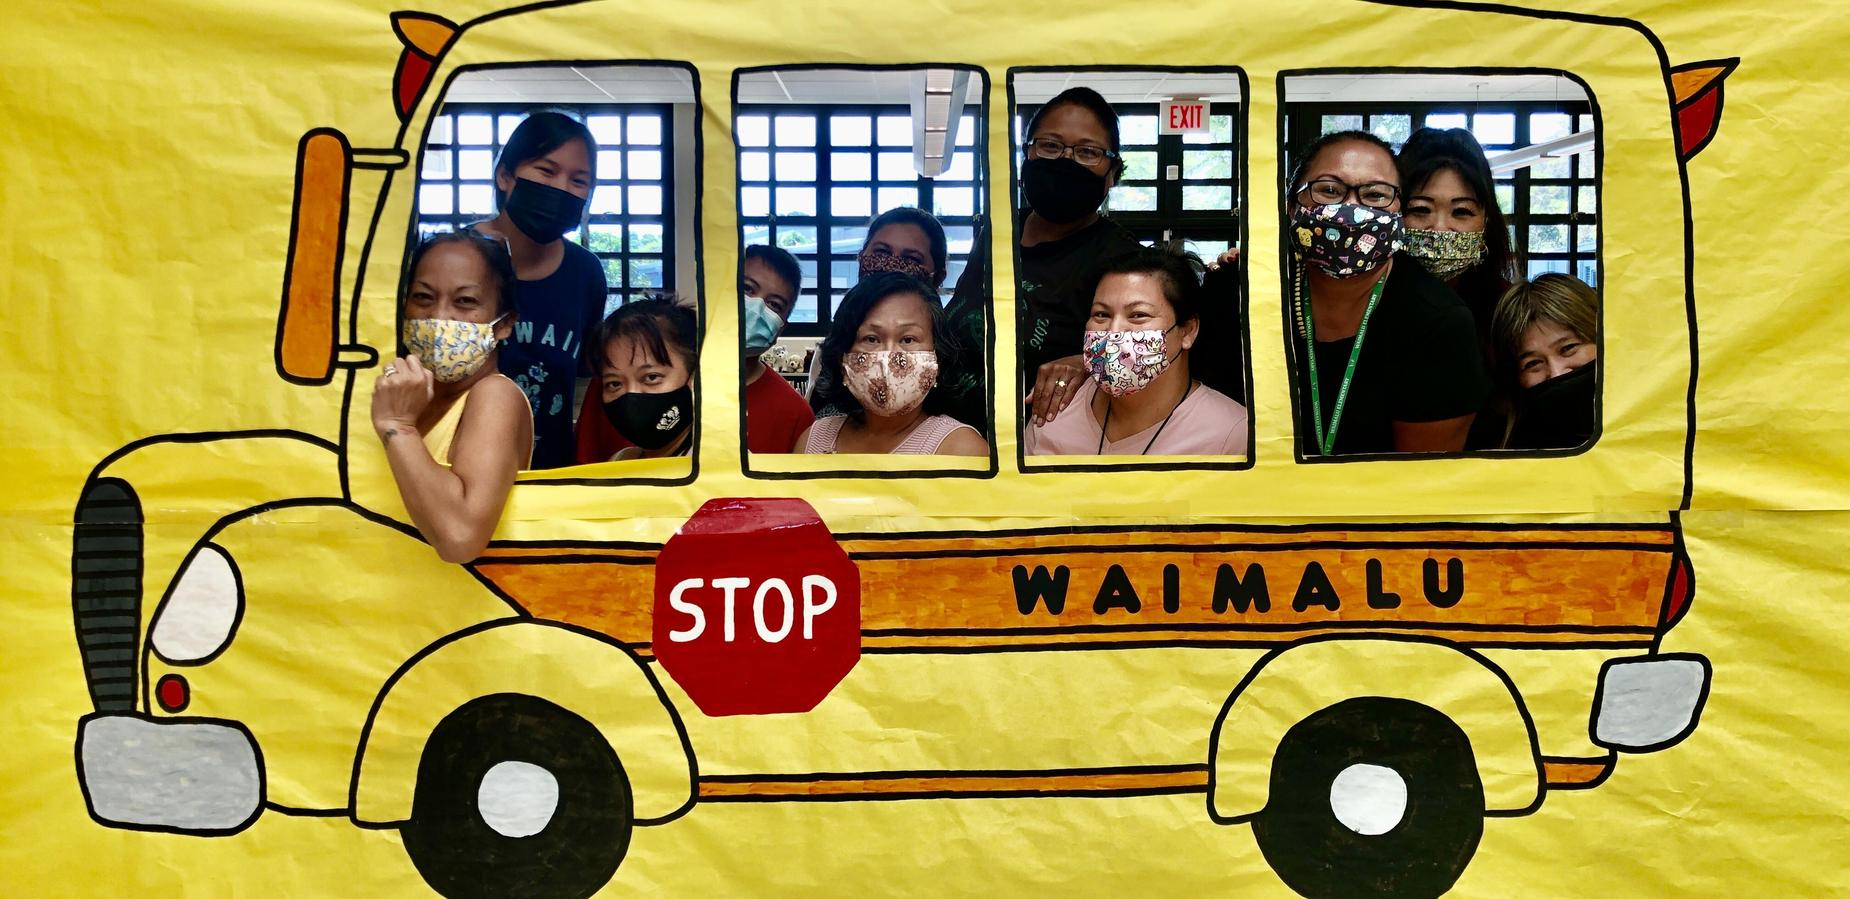 Our Educational Assistants riding the Waimalu Energy Bus